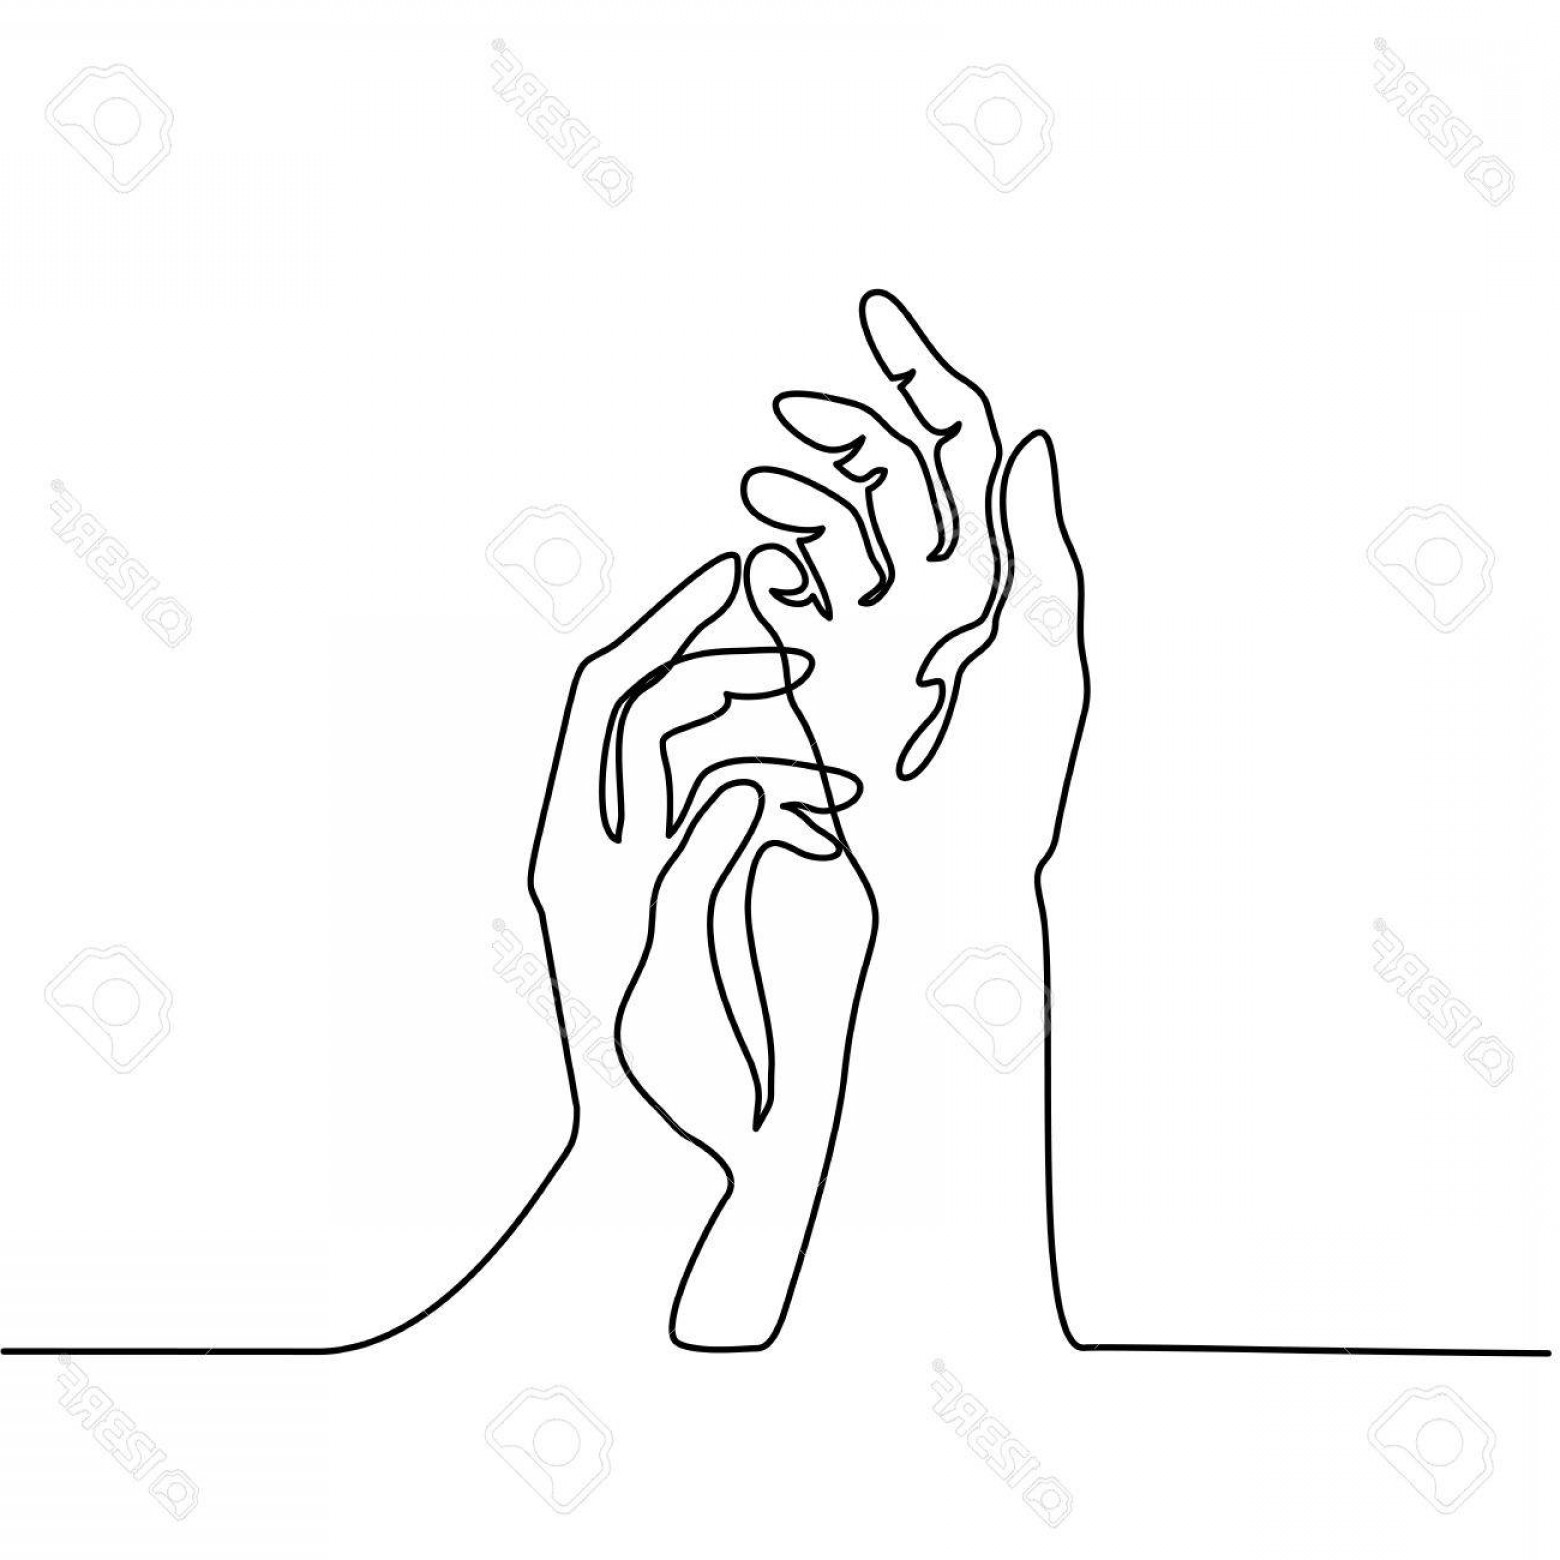 1560x1560 Photostock Vector Continuous Line Drawing Hands Palms Together